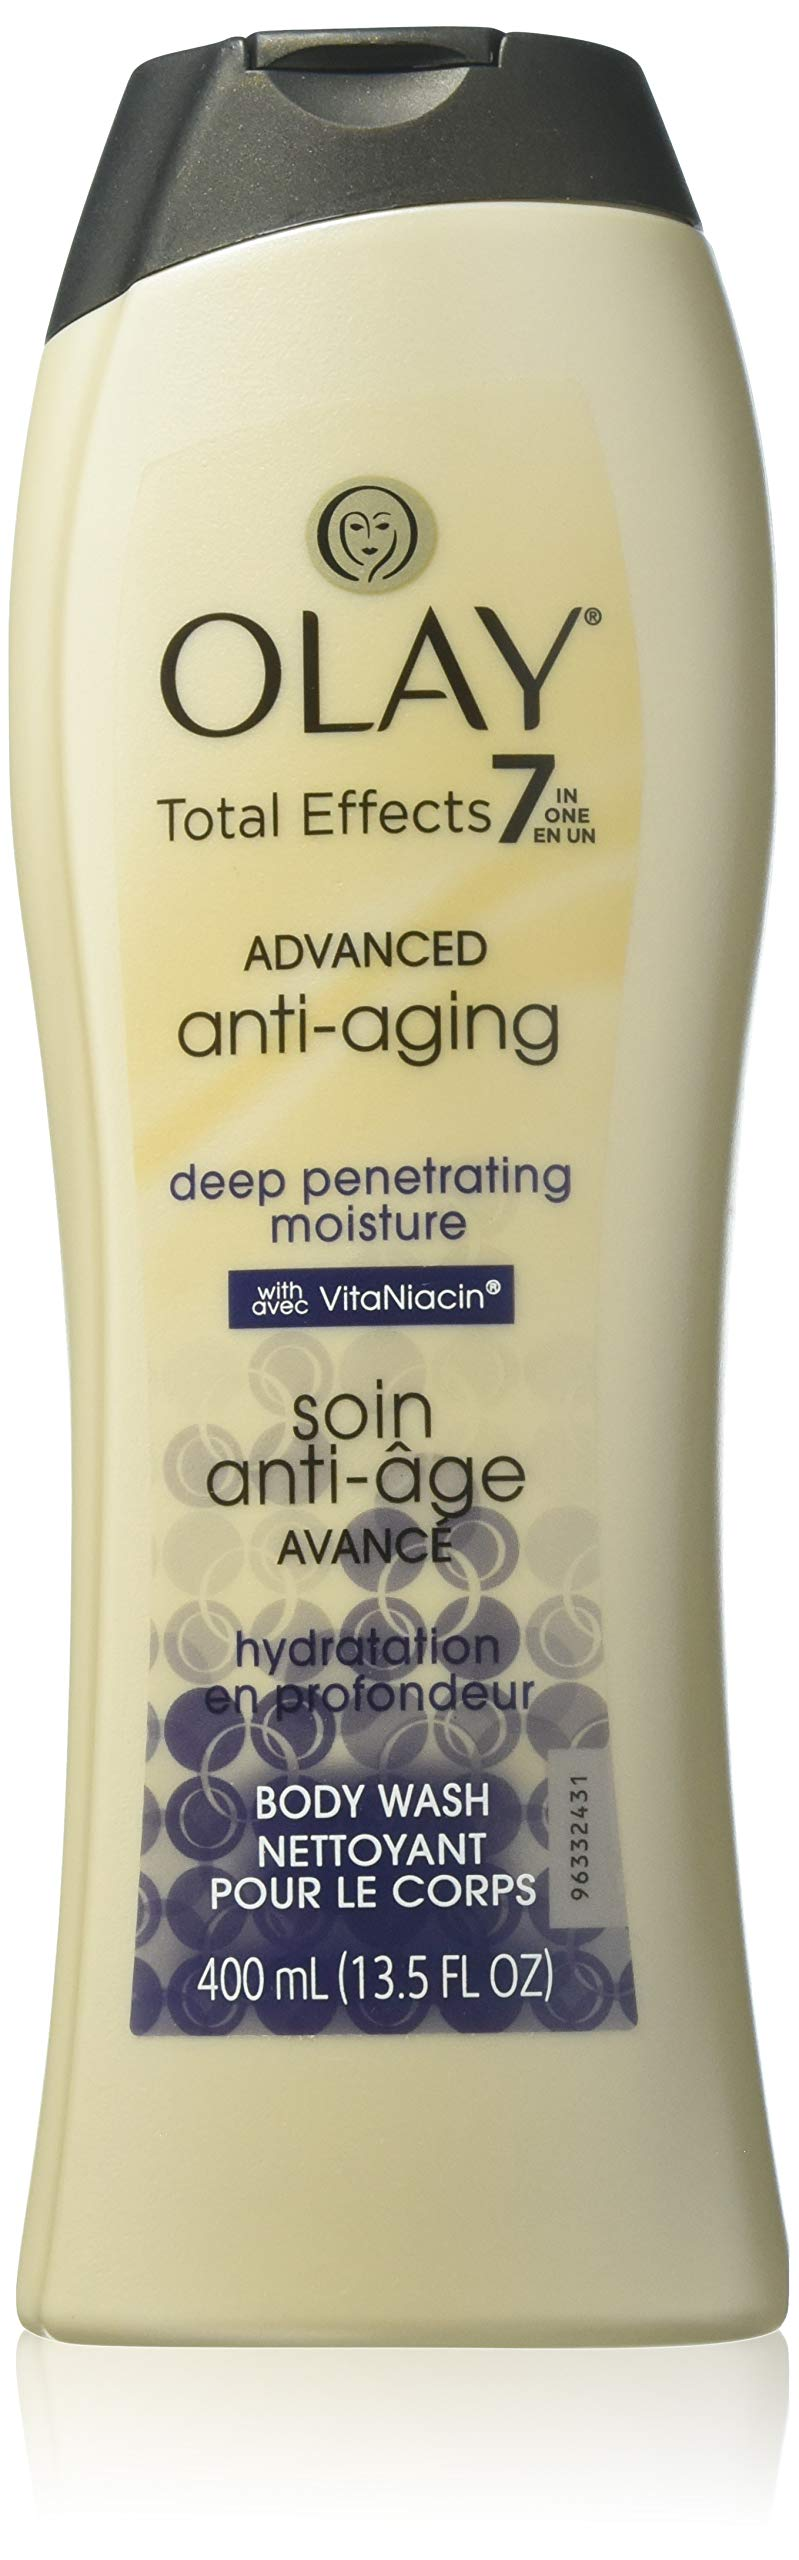 Olay Total Effects Advanced Anti-Aging, Deep Penetrating Moisture Body Wash with VitaNiacin for Younger-Looking Skin - 13.5 Fl Oz, Pack of 2 by Olay